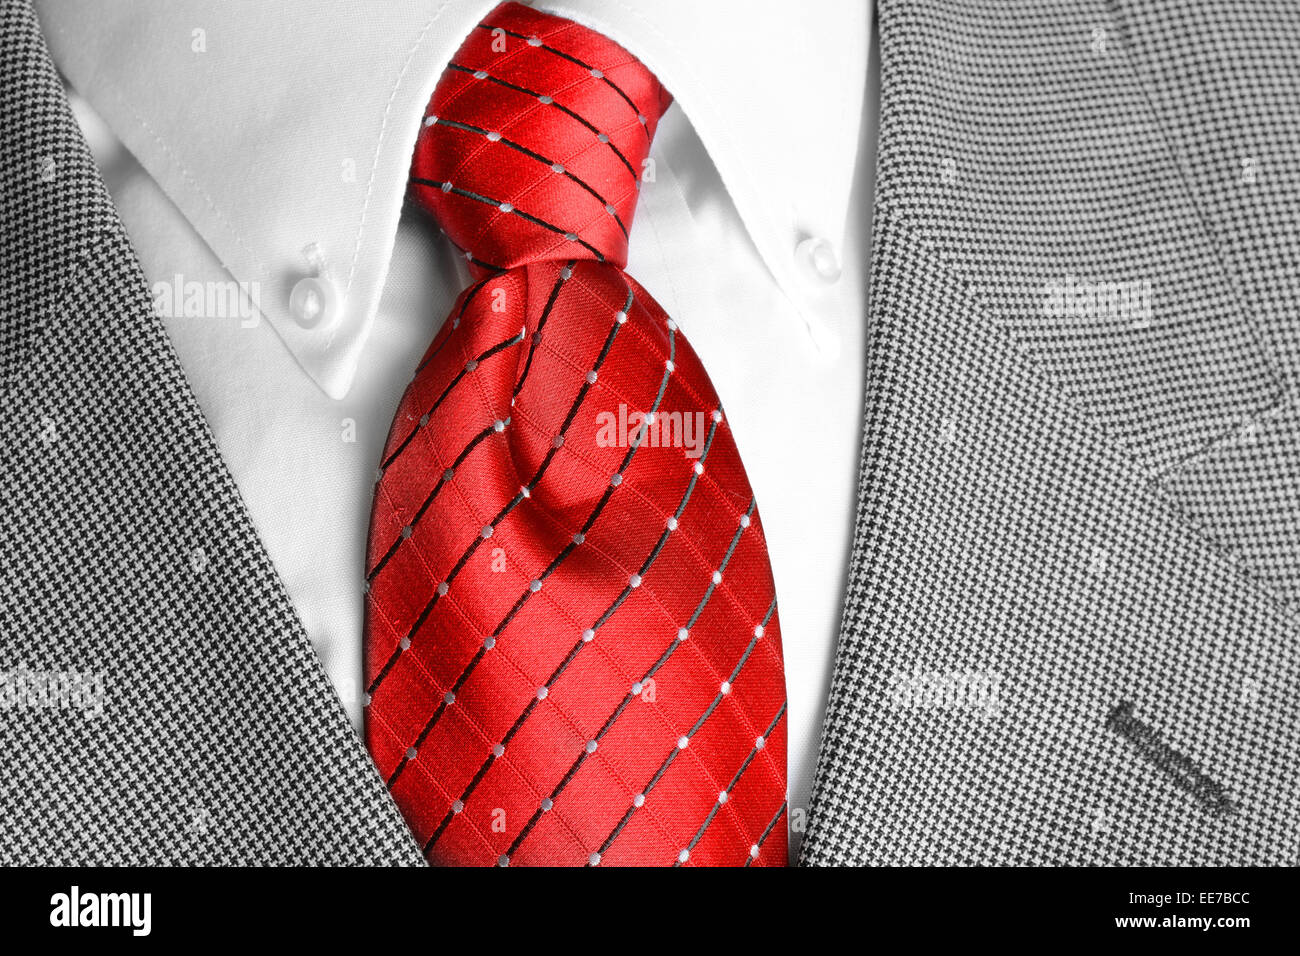 Shirt Collar Illustration Stock Photos Amp Shirt Collar